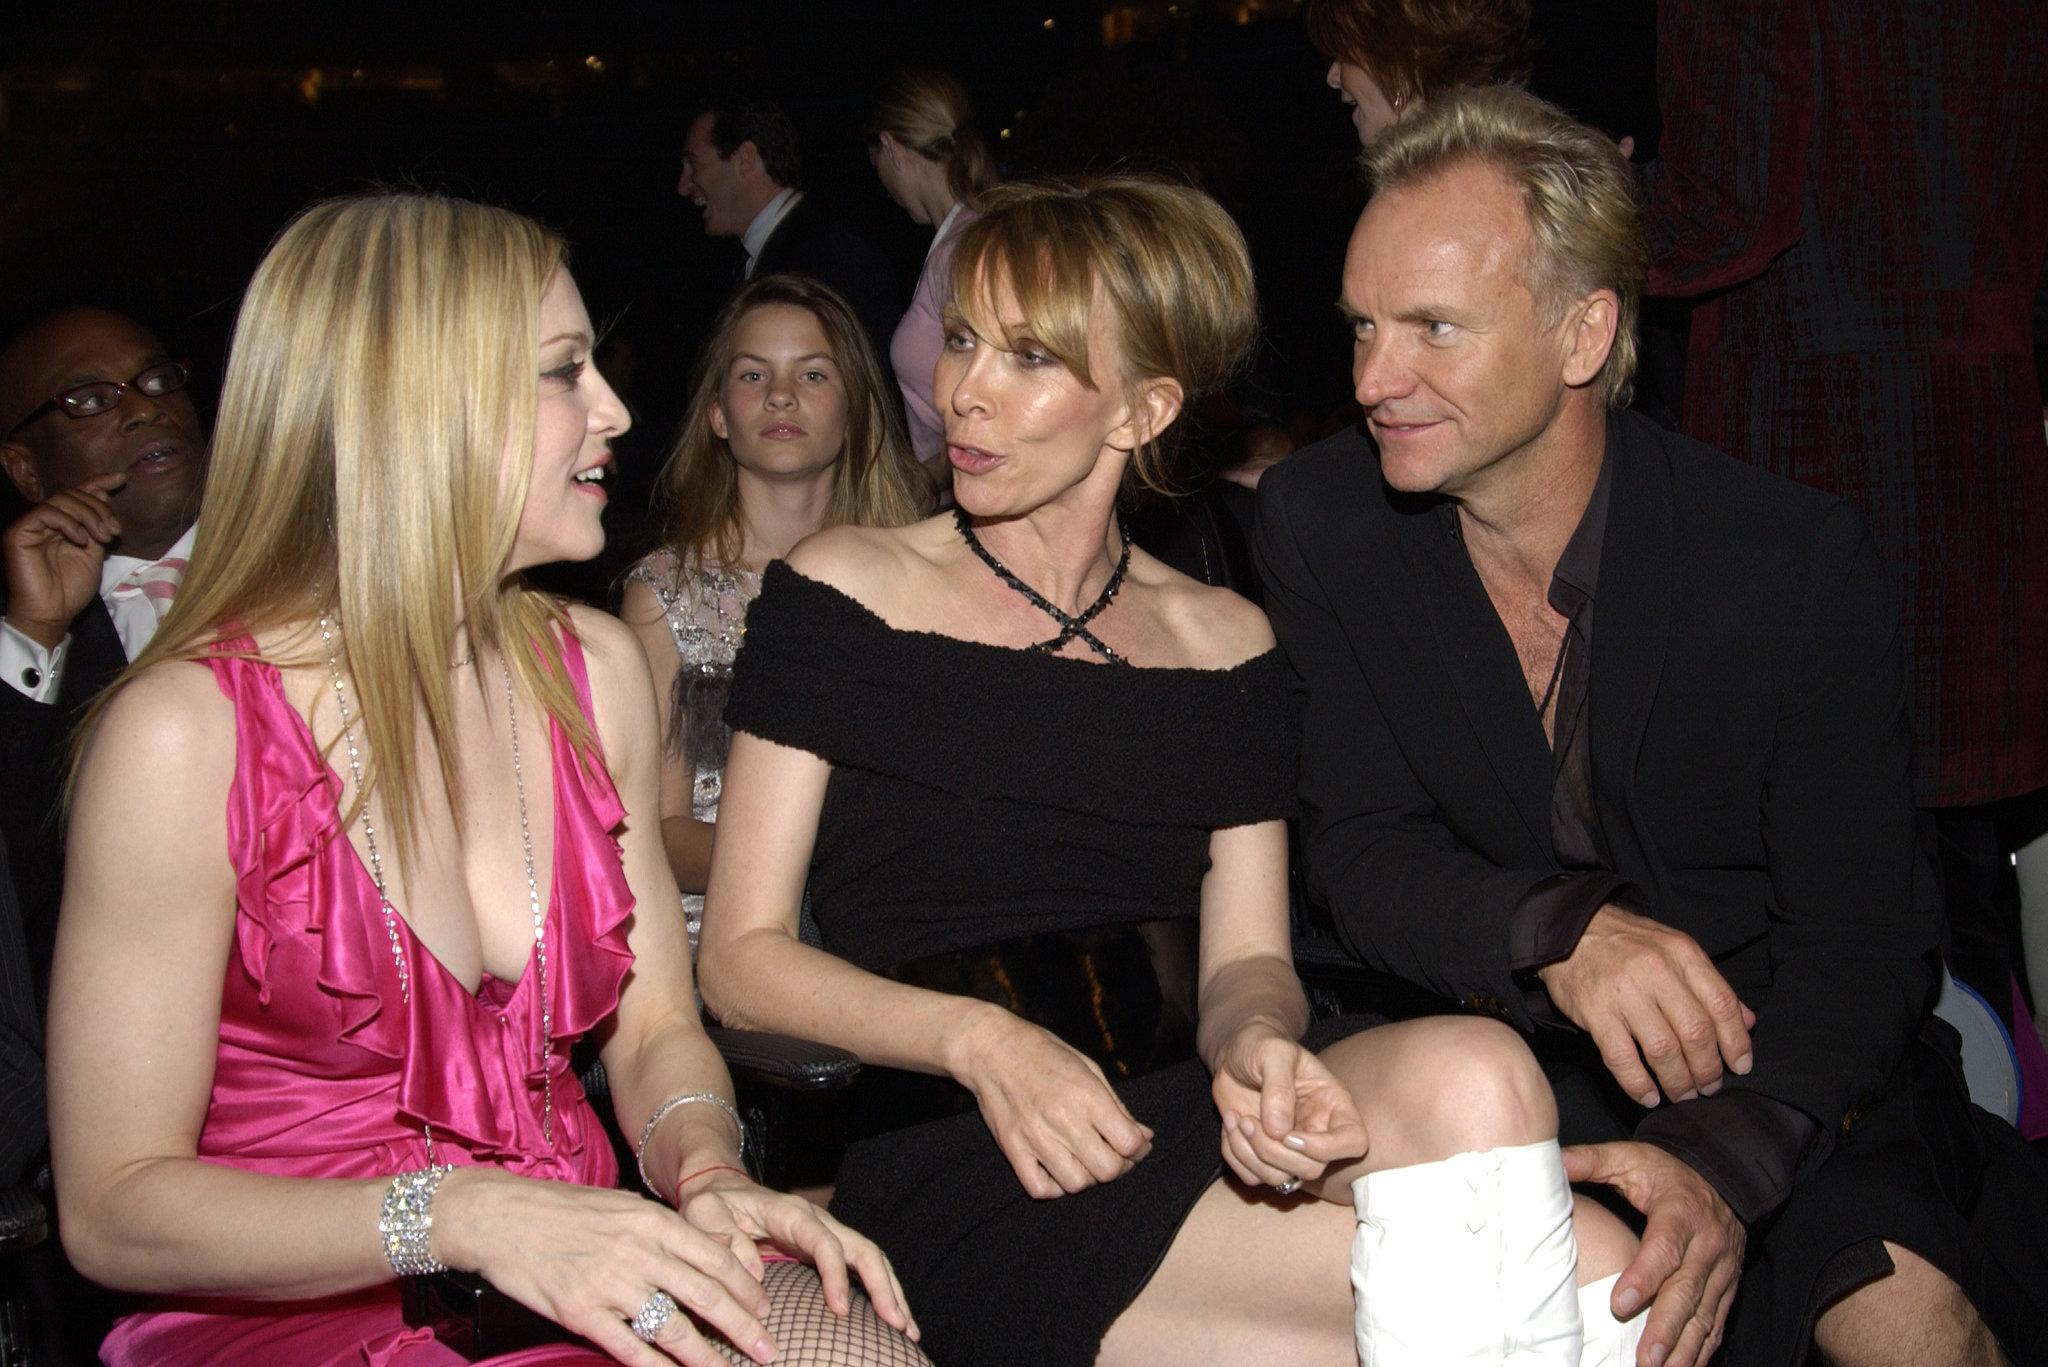 Sting and his wife, Trudie Styler, are godparents to Madonna's older son, Rocco Ritchie.